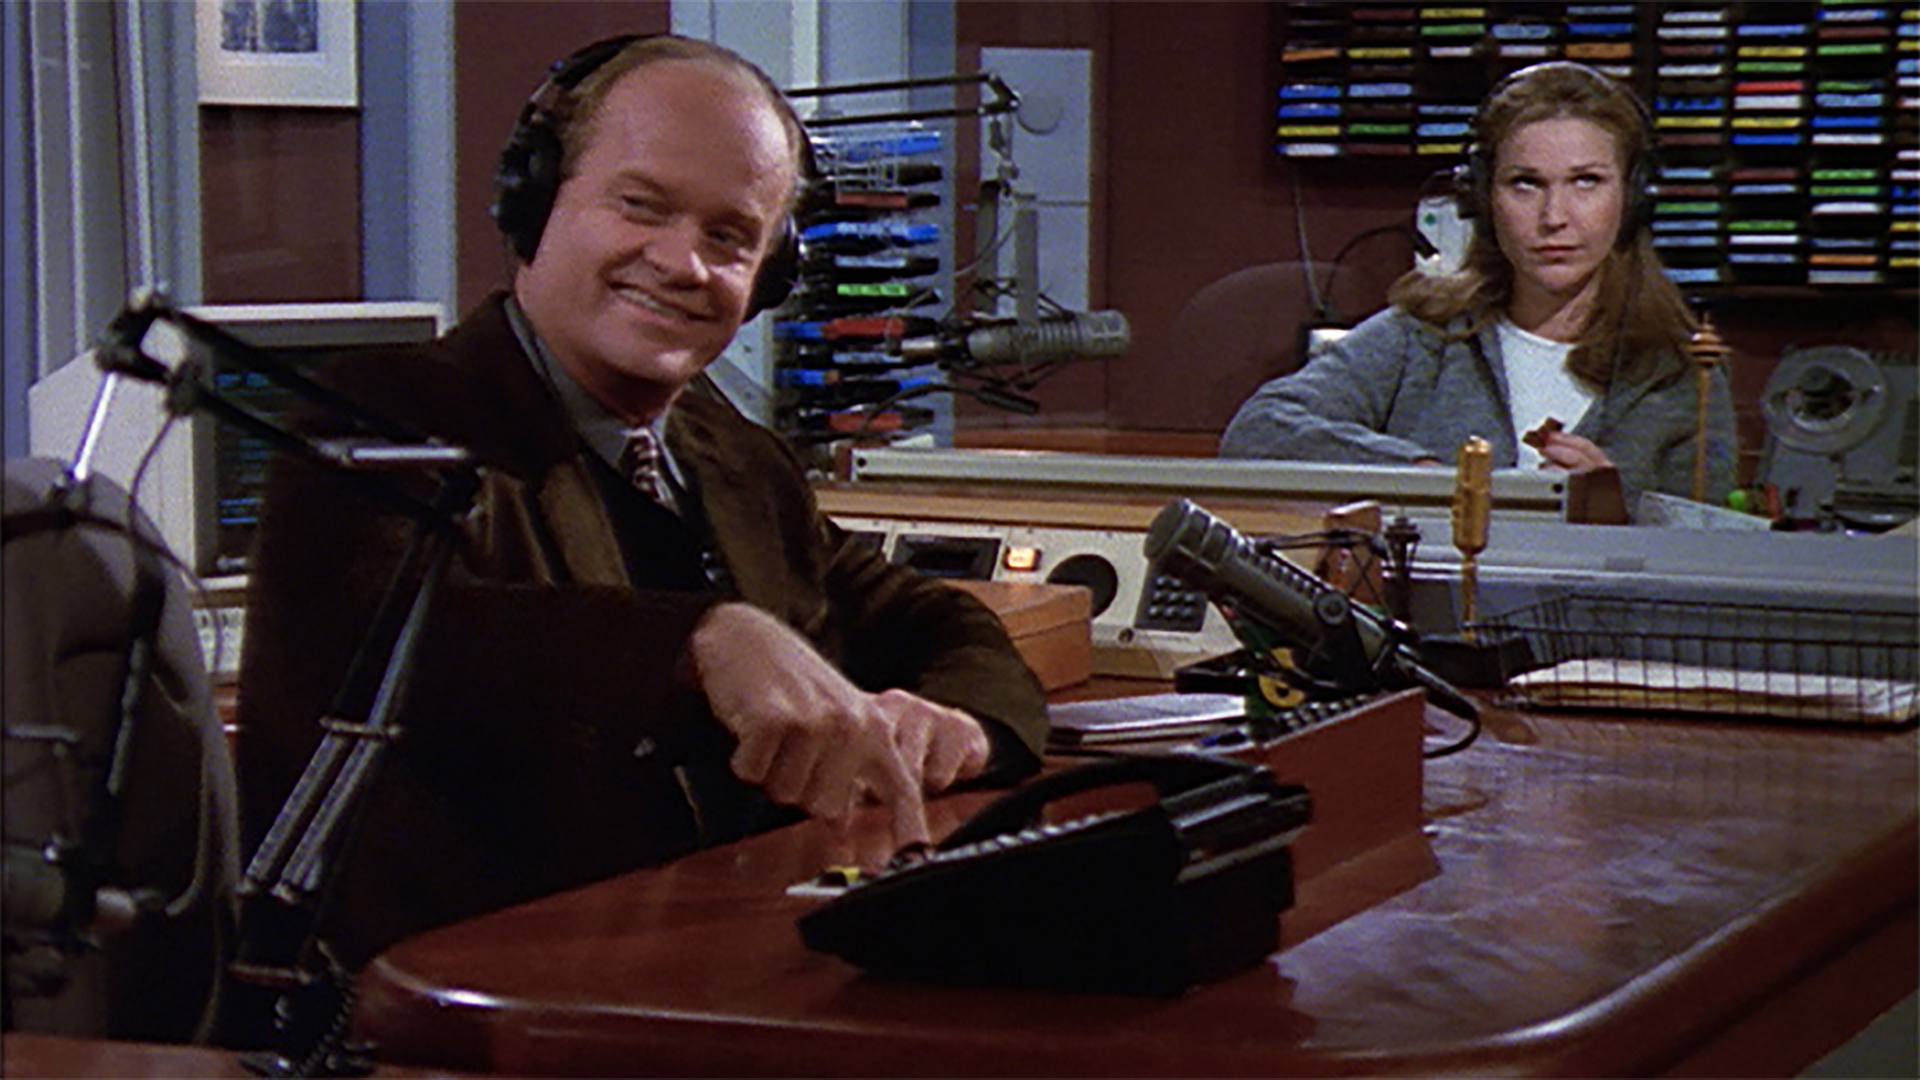 Watch Frasier Season 5 Episode 17: The Perfect Guy - Full show on CBS All  Access